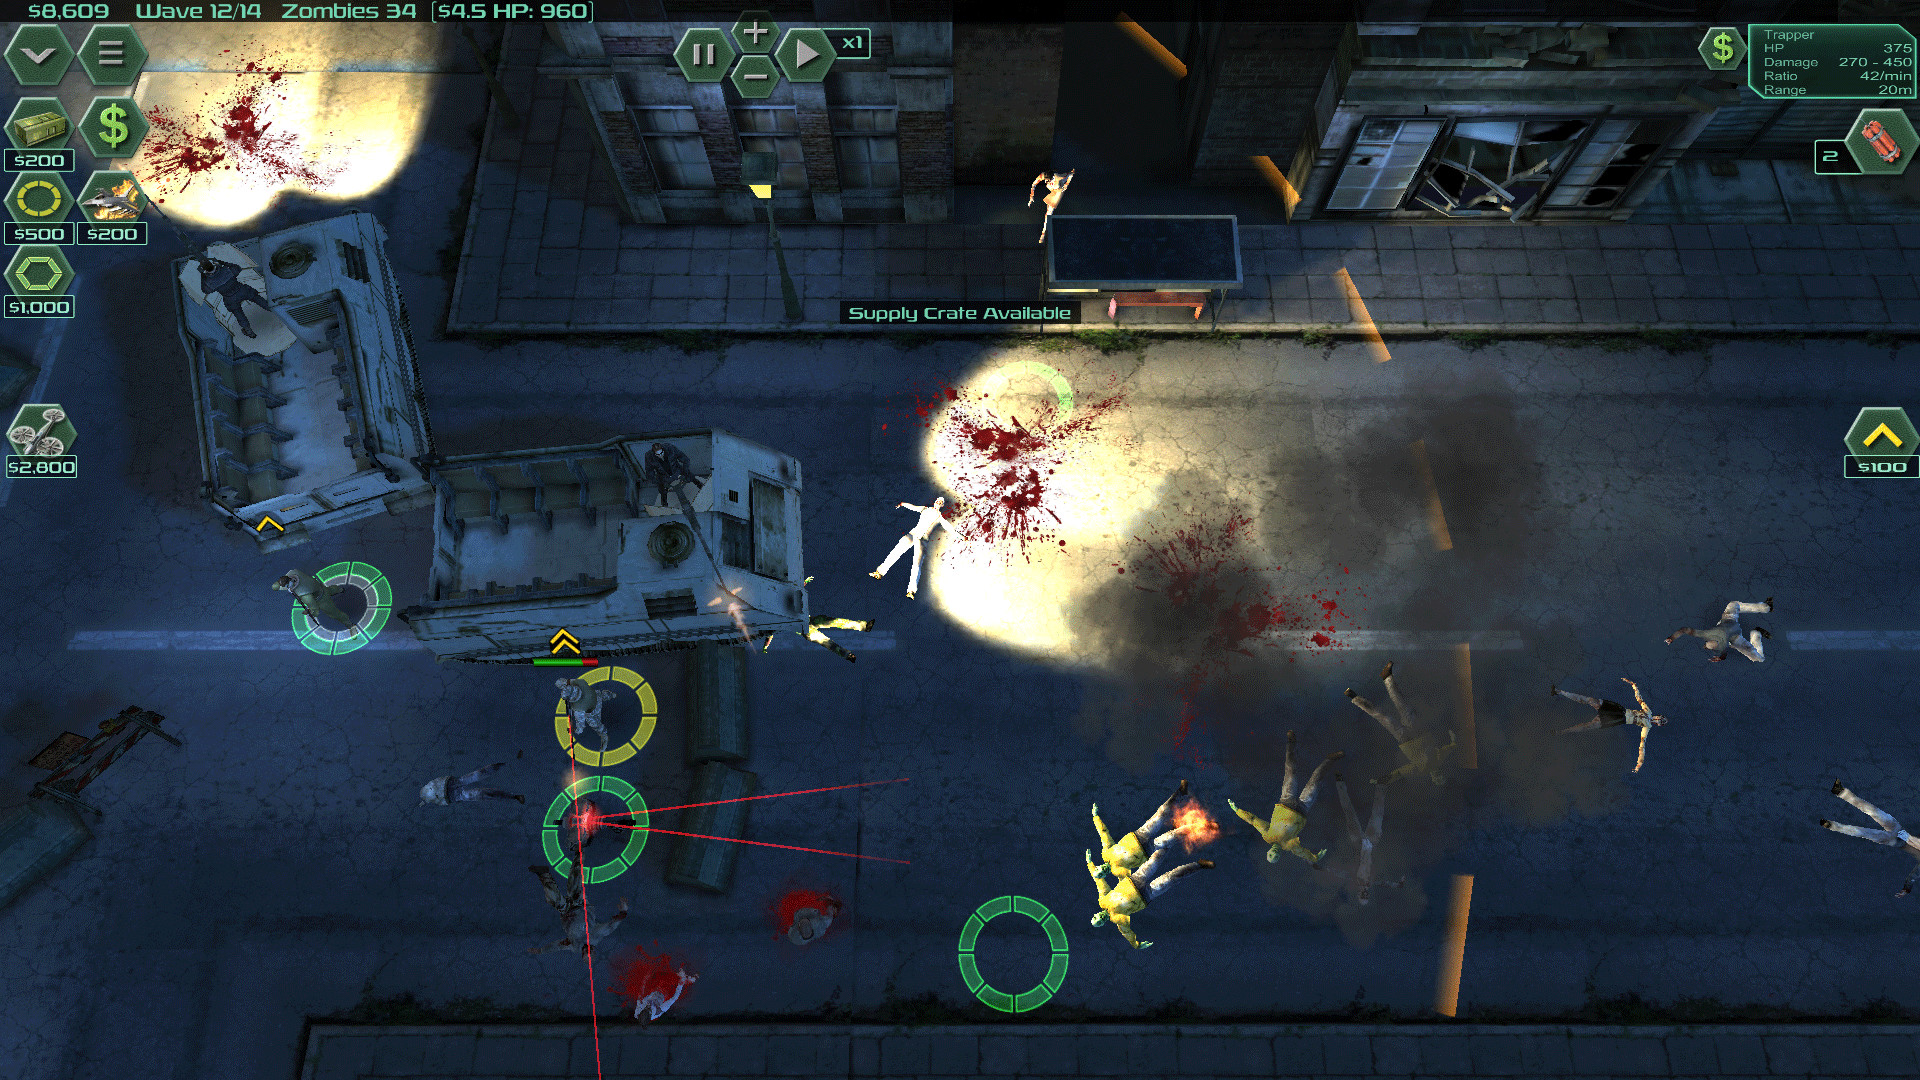 Zombie Defense is a Mobile game, now available on Steam Store.